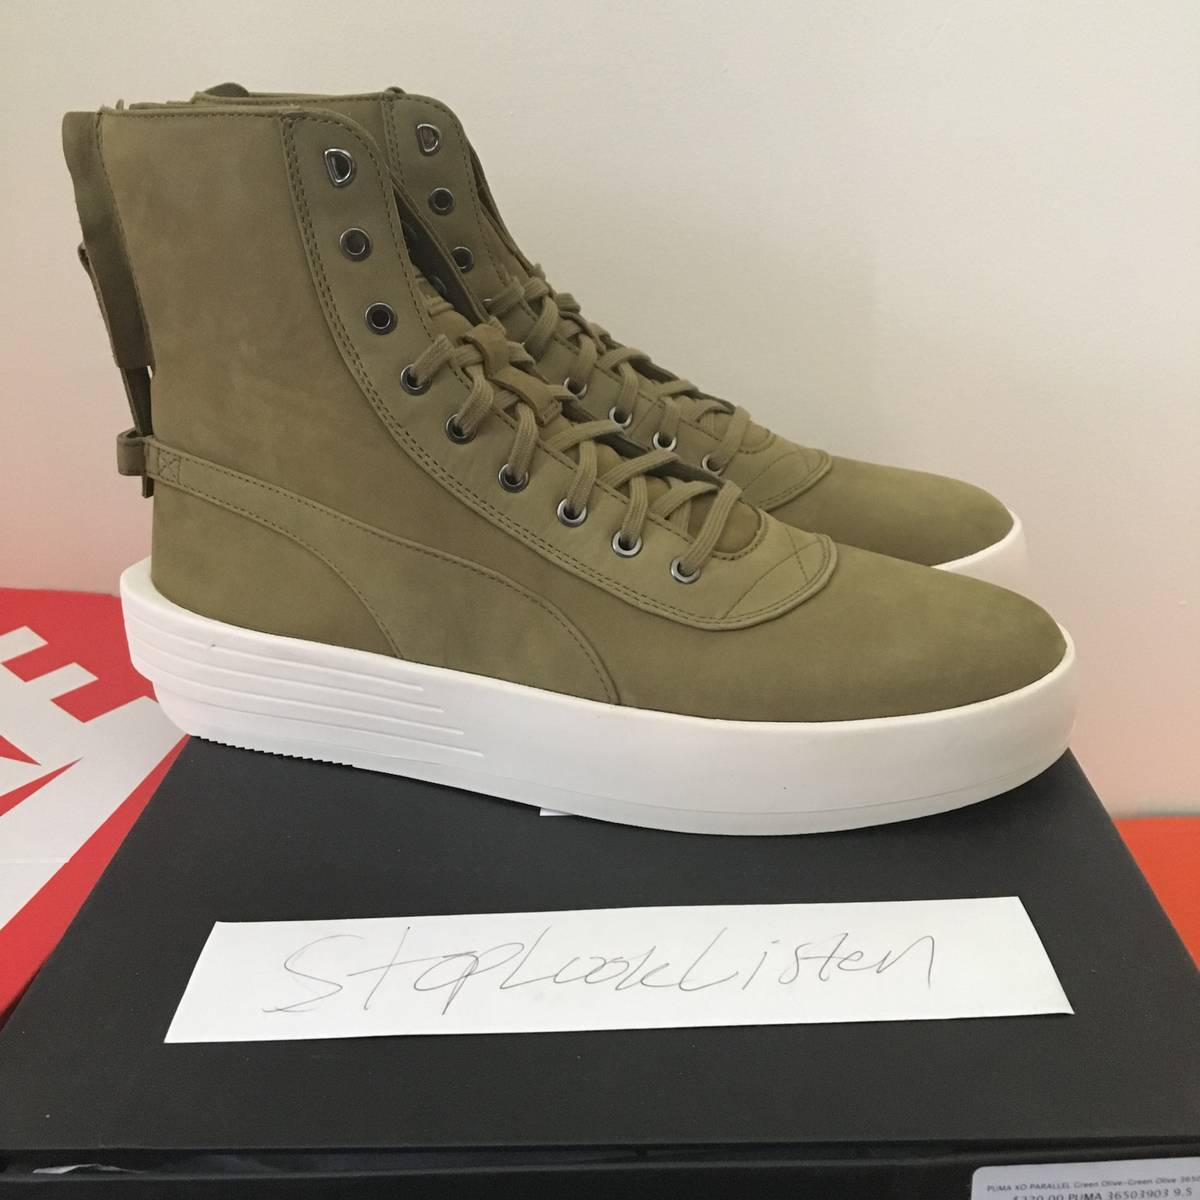 64adeee7546 Puma PUMA X THE WEEKND XO PARALLEL OLIVE GREEN SIZE 9.5 US Size 9.5 -  Hi-Top Sneakers for Sale - Grailed